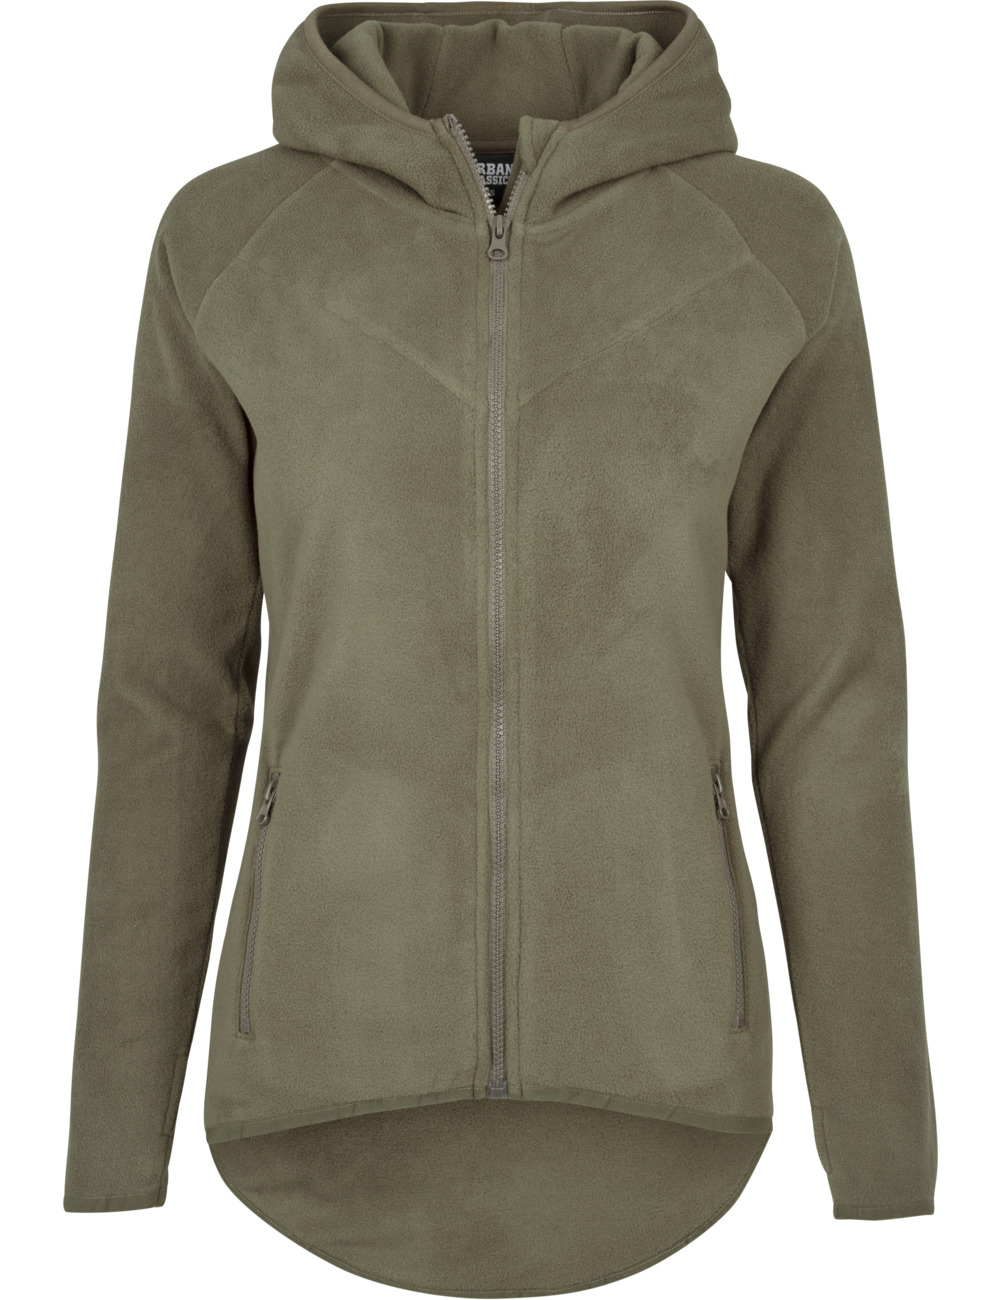 urban-classics-ladies-polar-fleece-zip-hoody